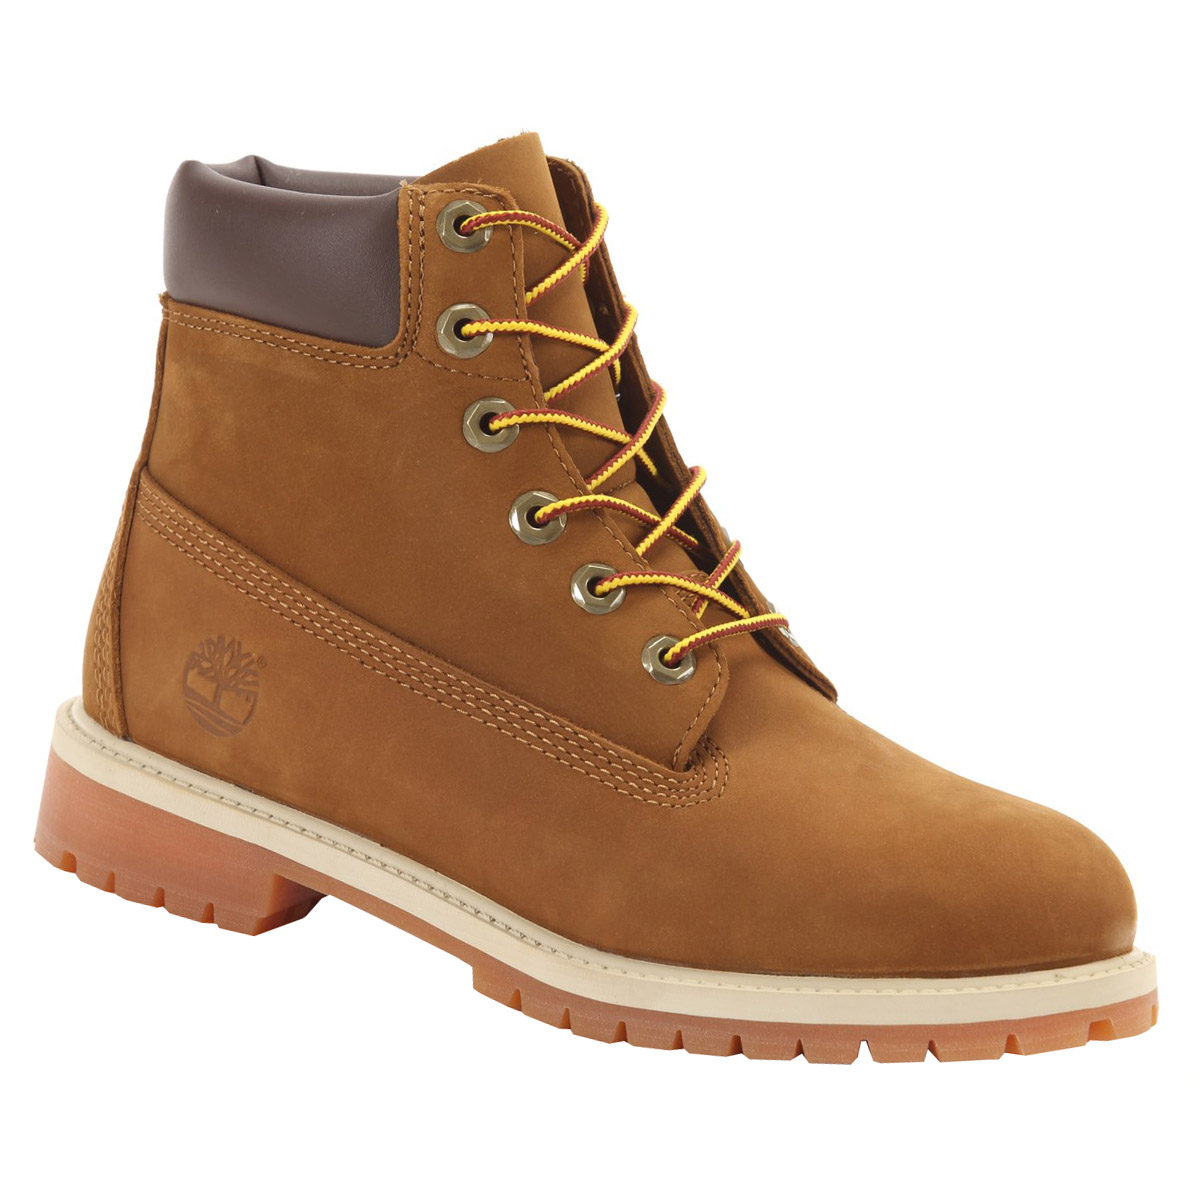 Timberland 6-Inch Premium Boots Leather Boots Women's Girl